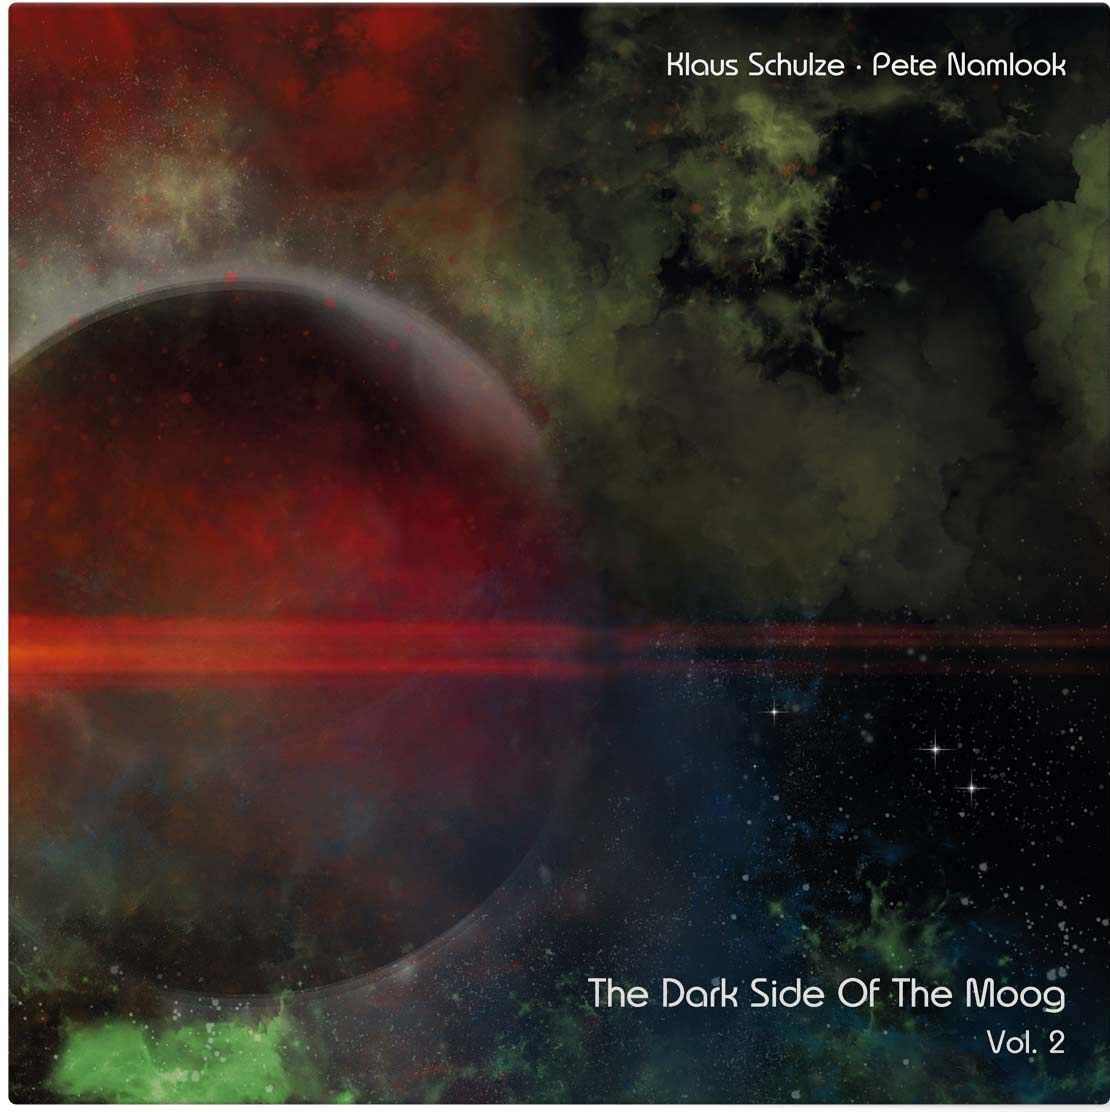 Клаус Шульце,Пит Нэмлук Klaus Schulze & Pete Namlook. The Dark Side Of The Moog Vol.2 (2 LP) все цены